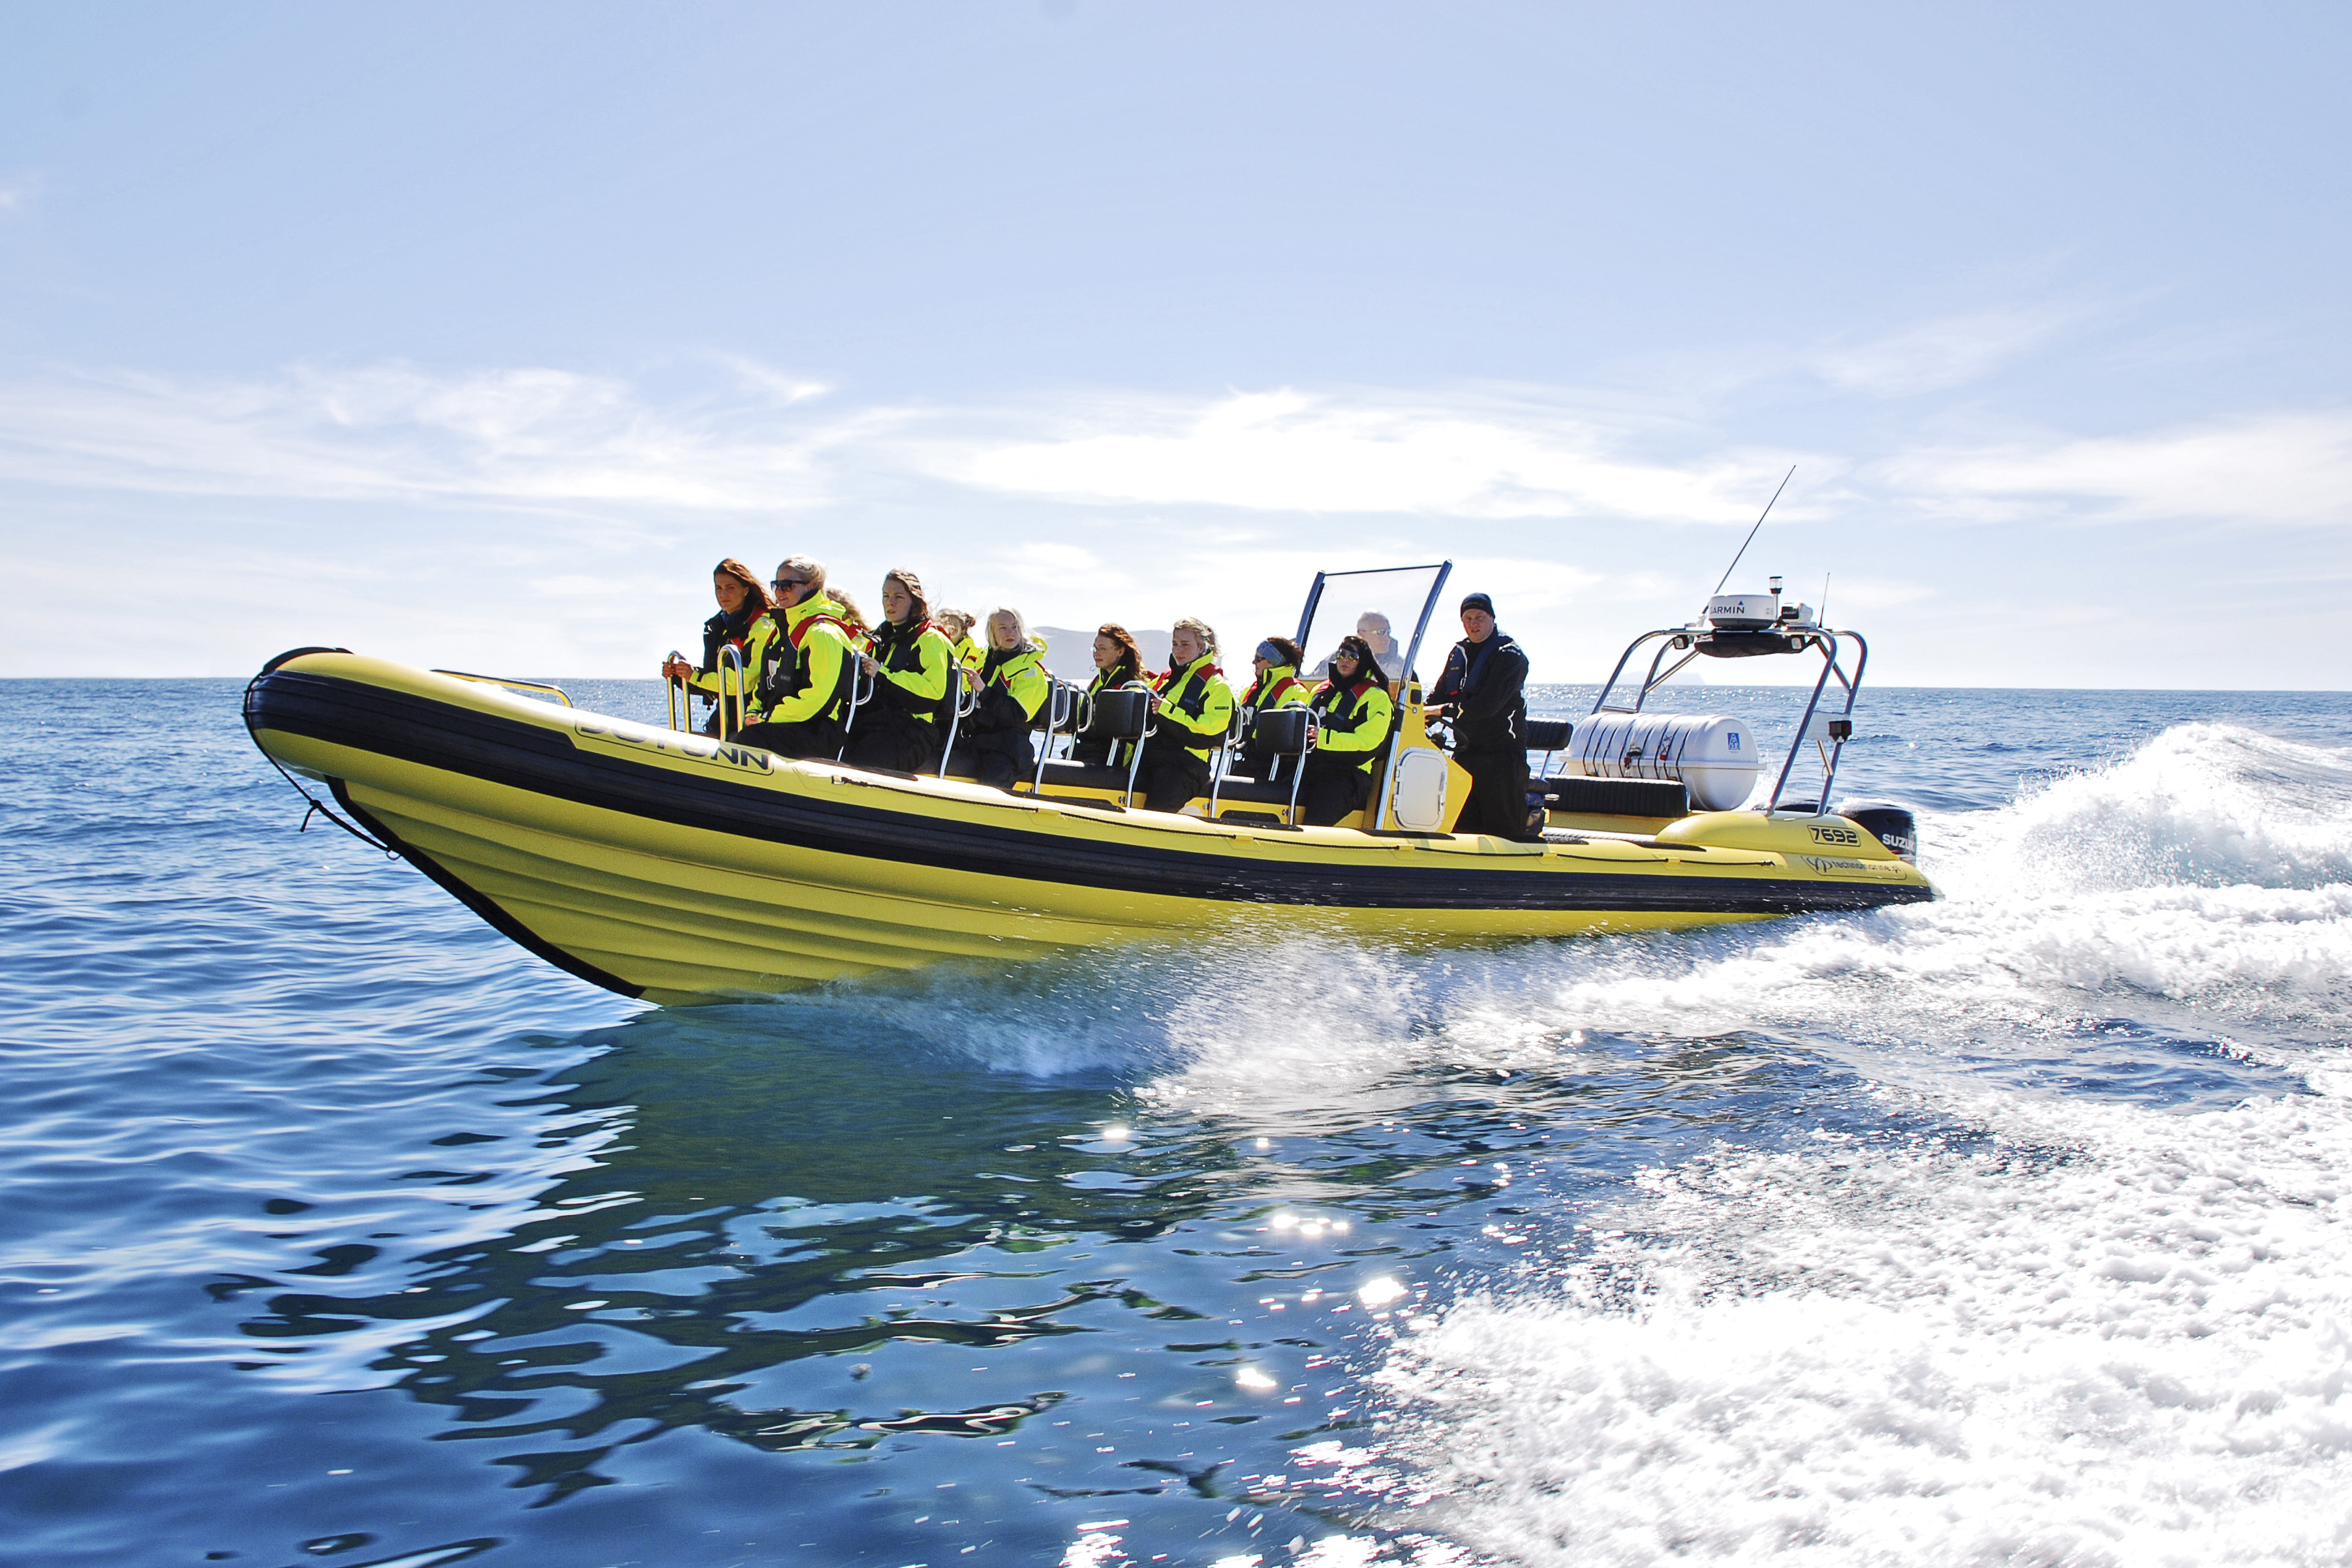 Atv Amp Rib Boat Tour Guide To Iceland